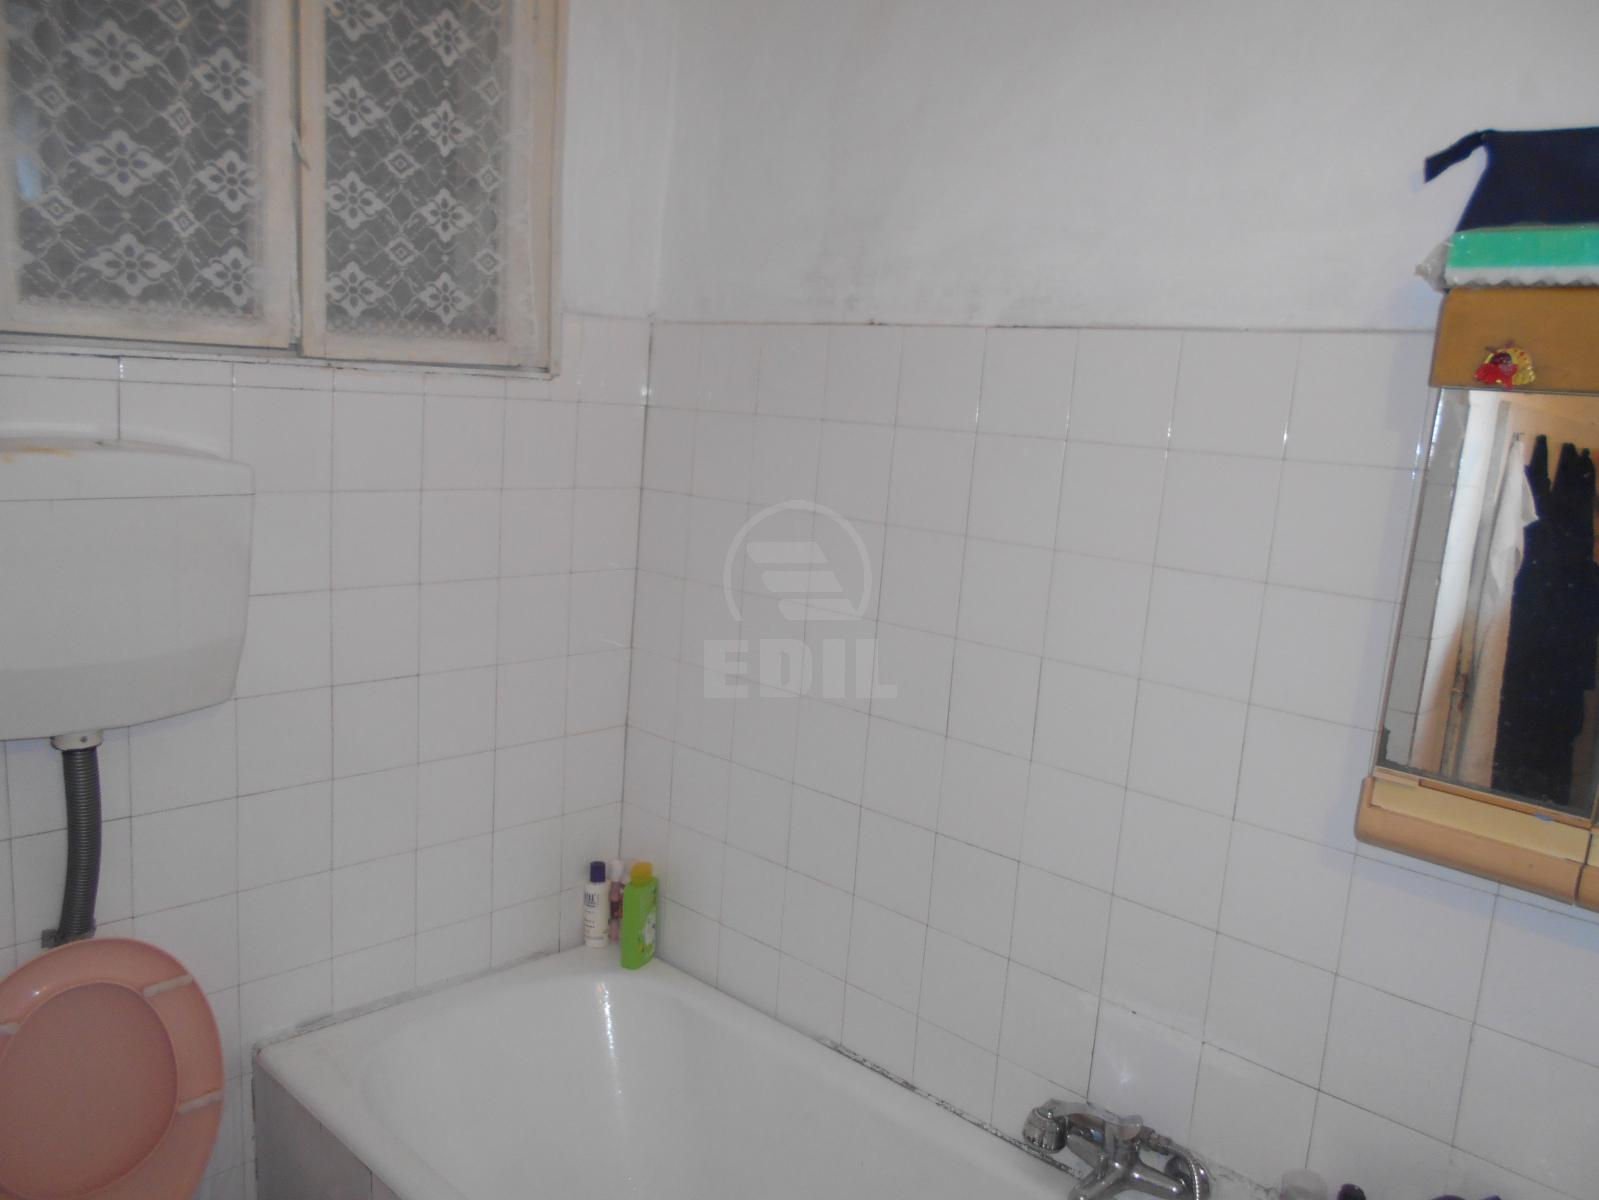 House for sale 3 rooms, CACJ271846-3